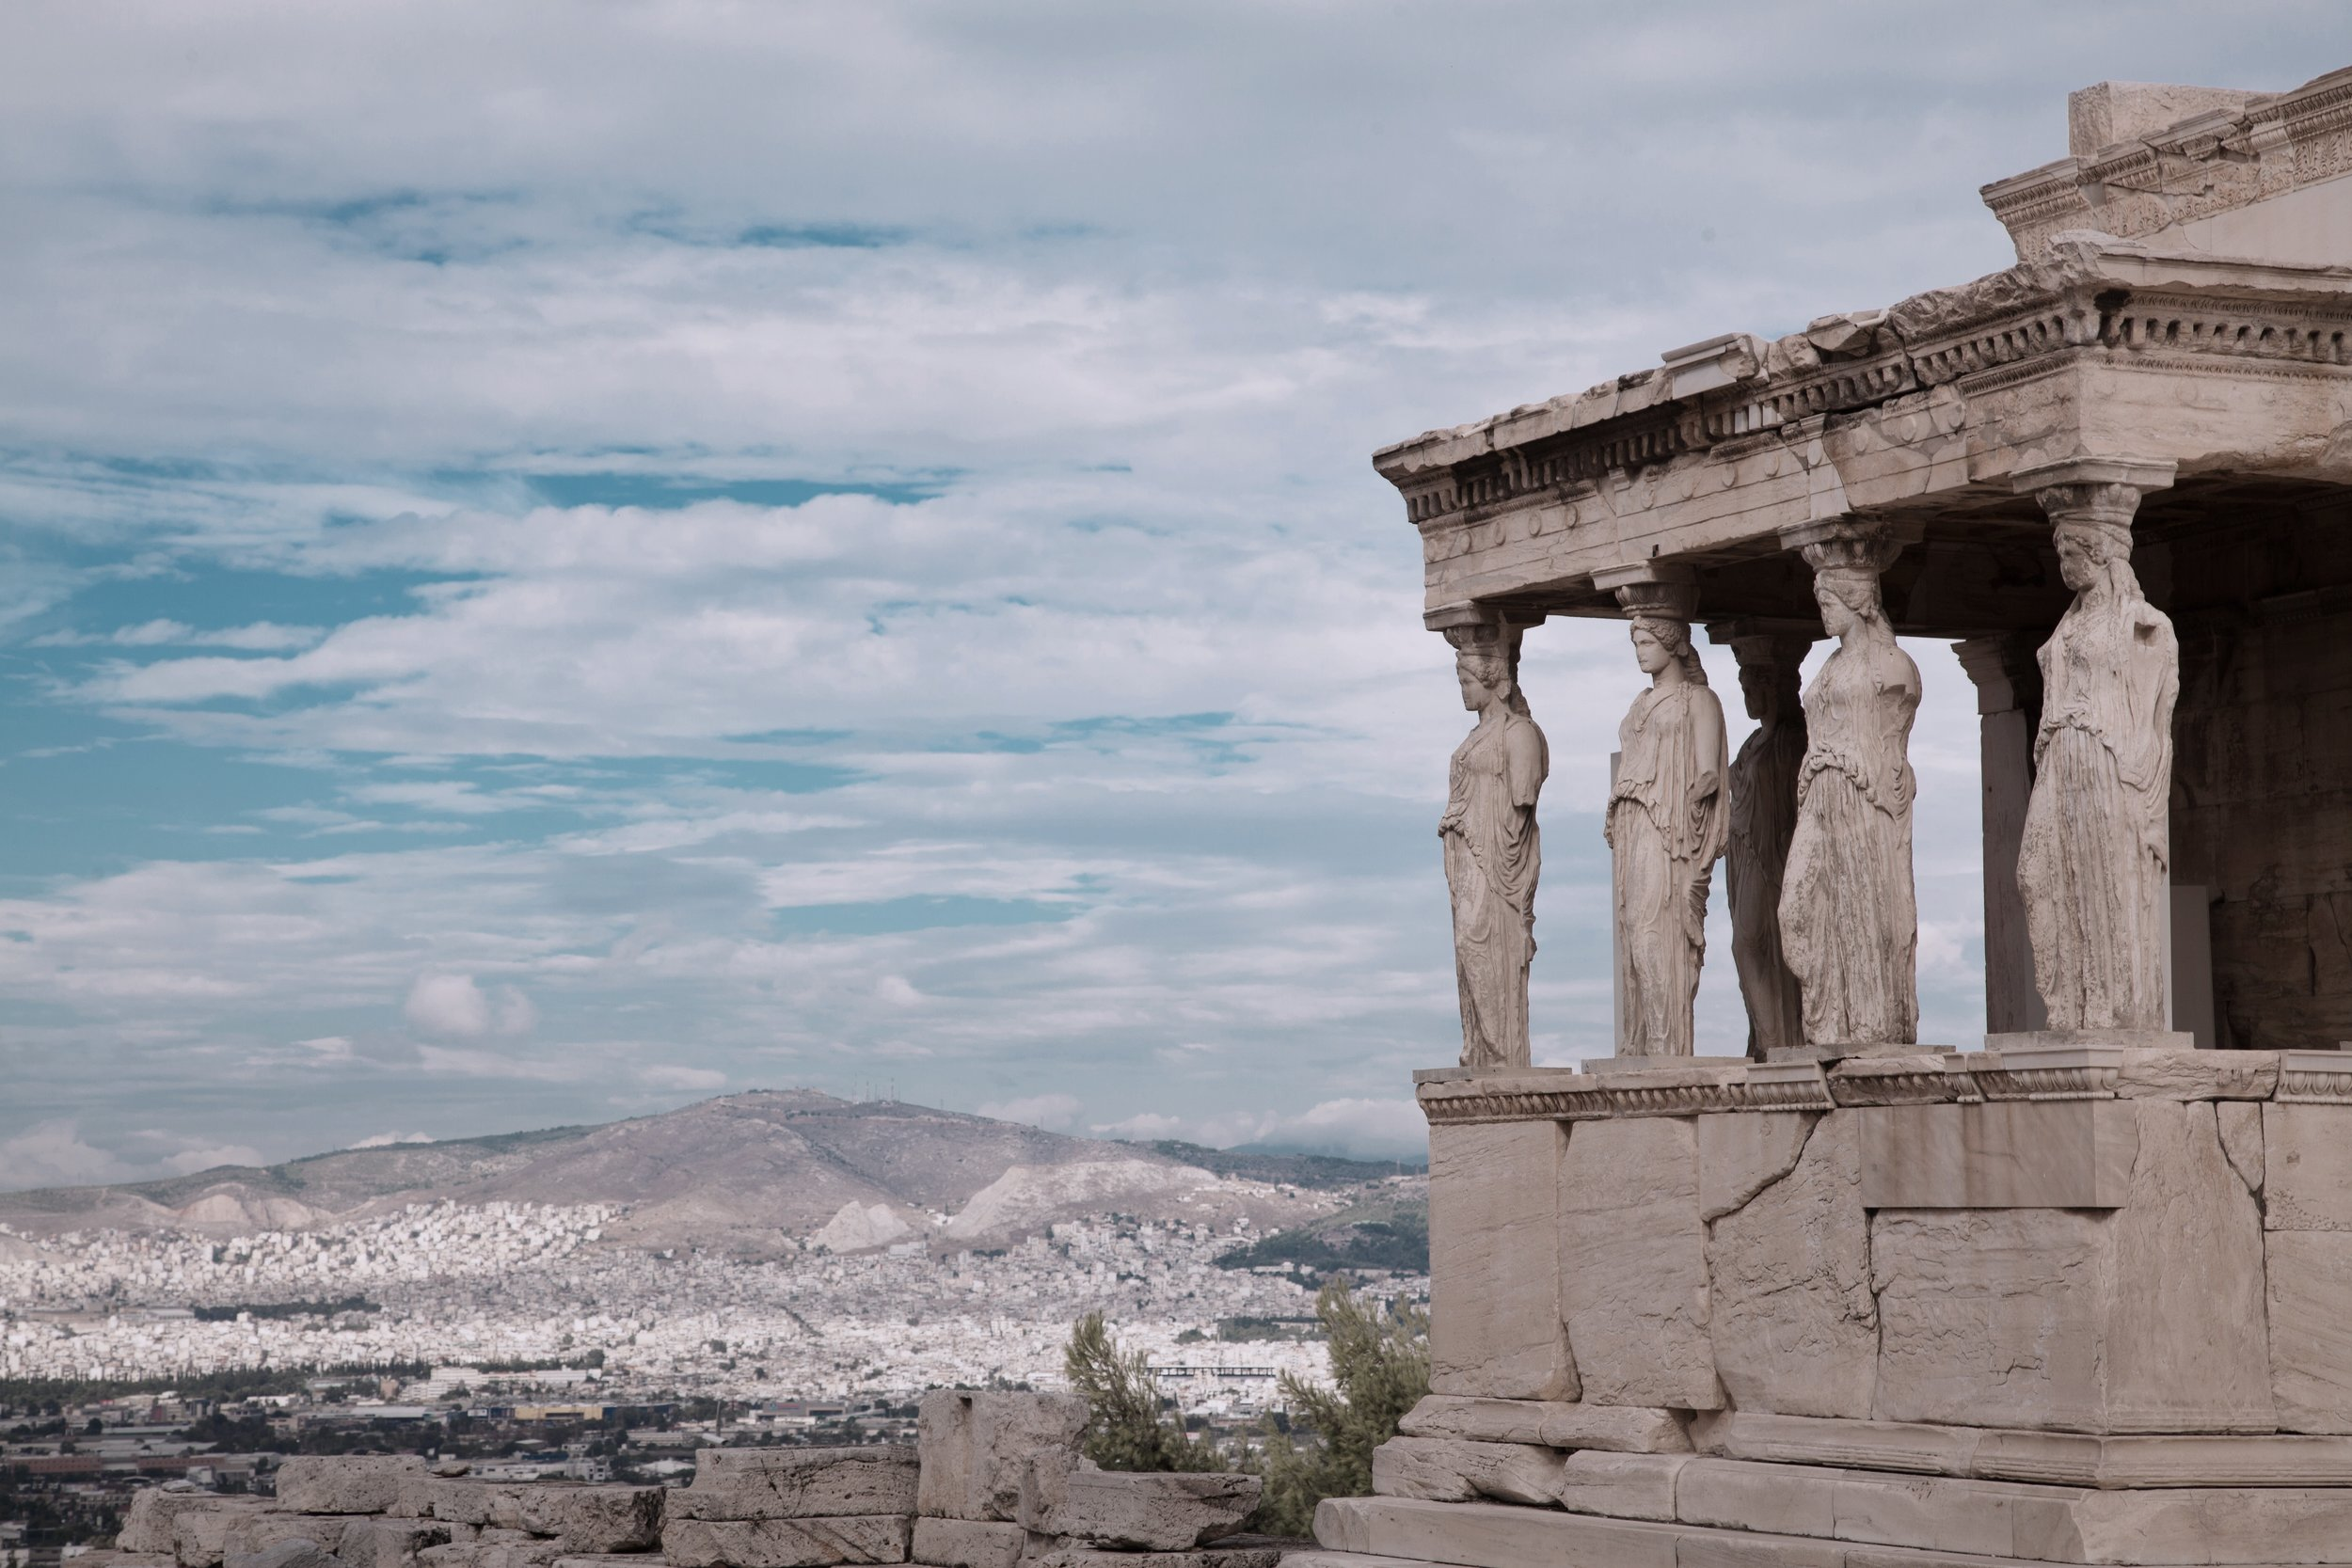 acropolis-ancient-archaeology-951531.jpg